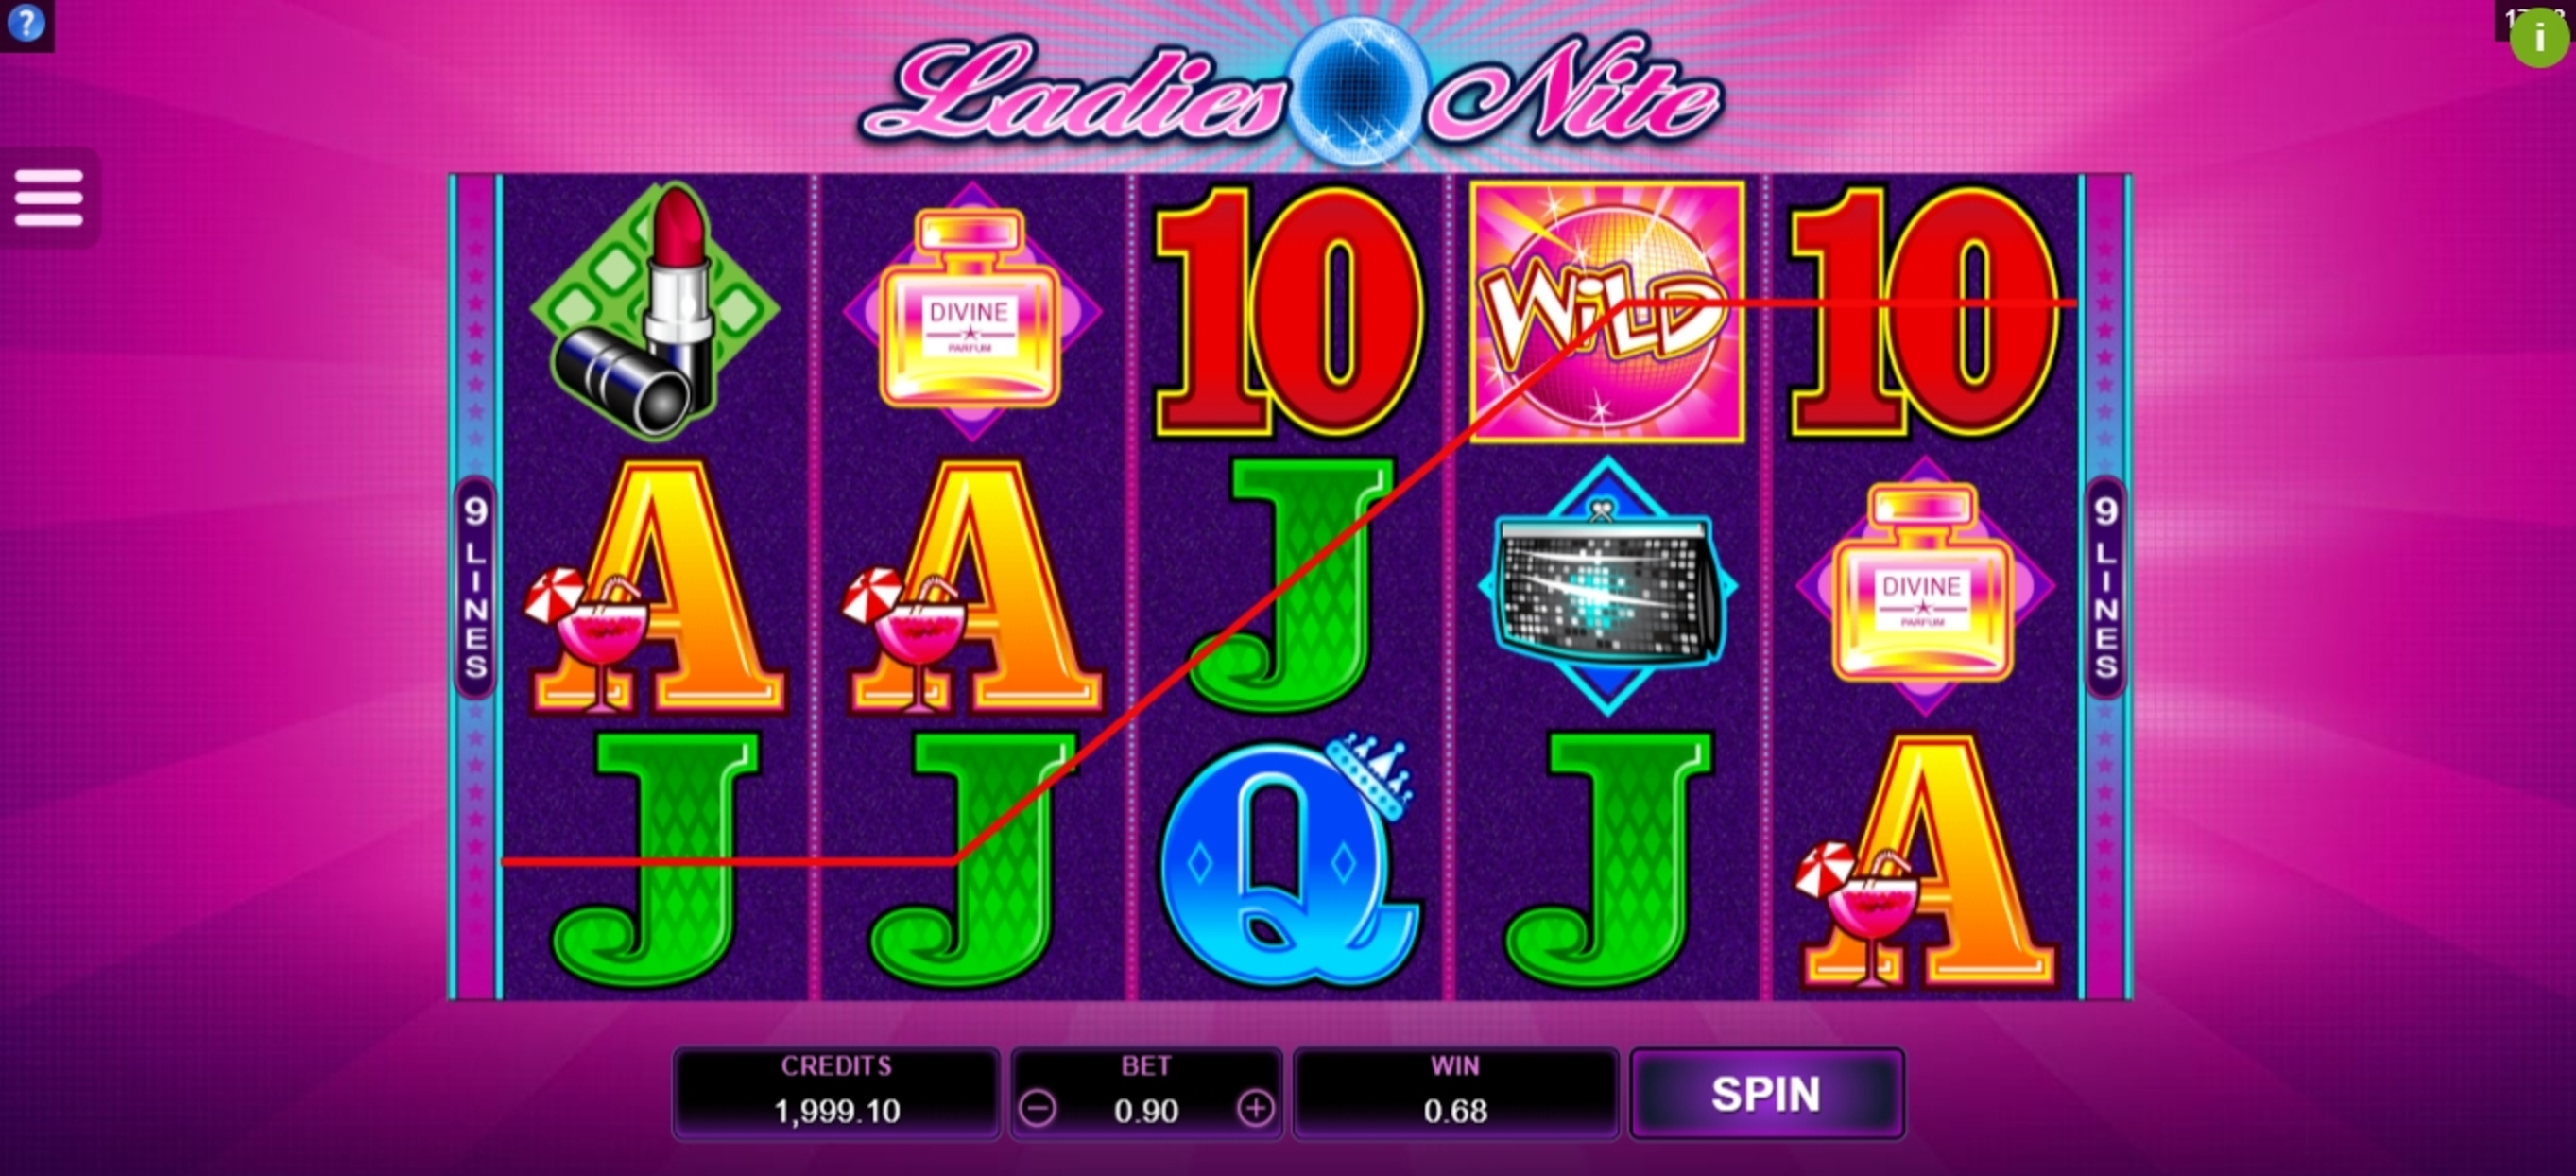 Win Money in Ladies Nite Free Slot Game by Microgaming